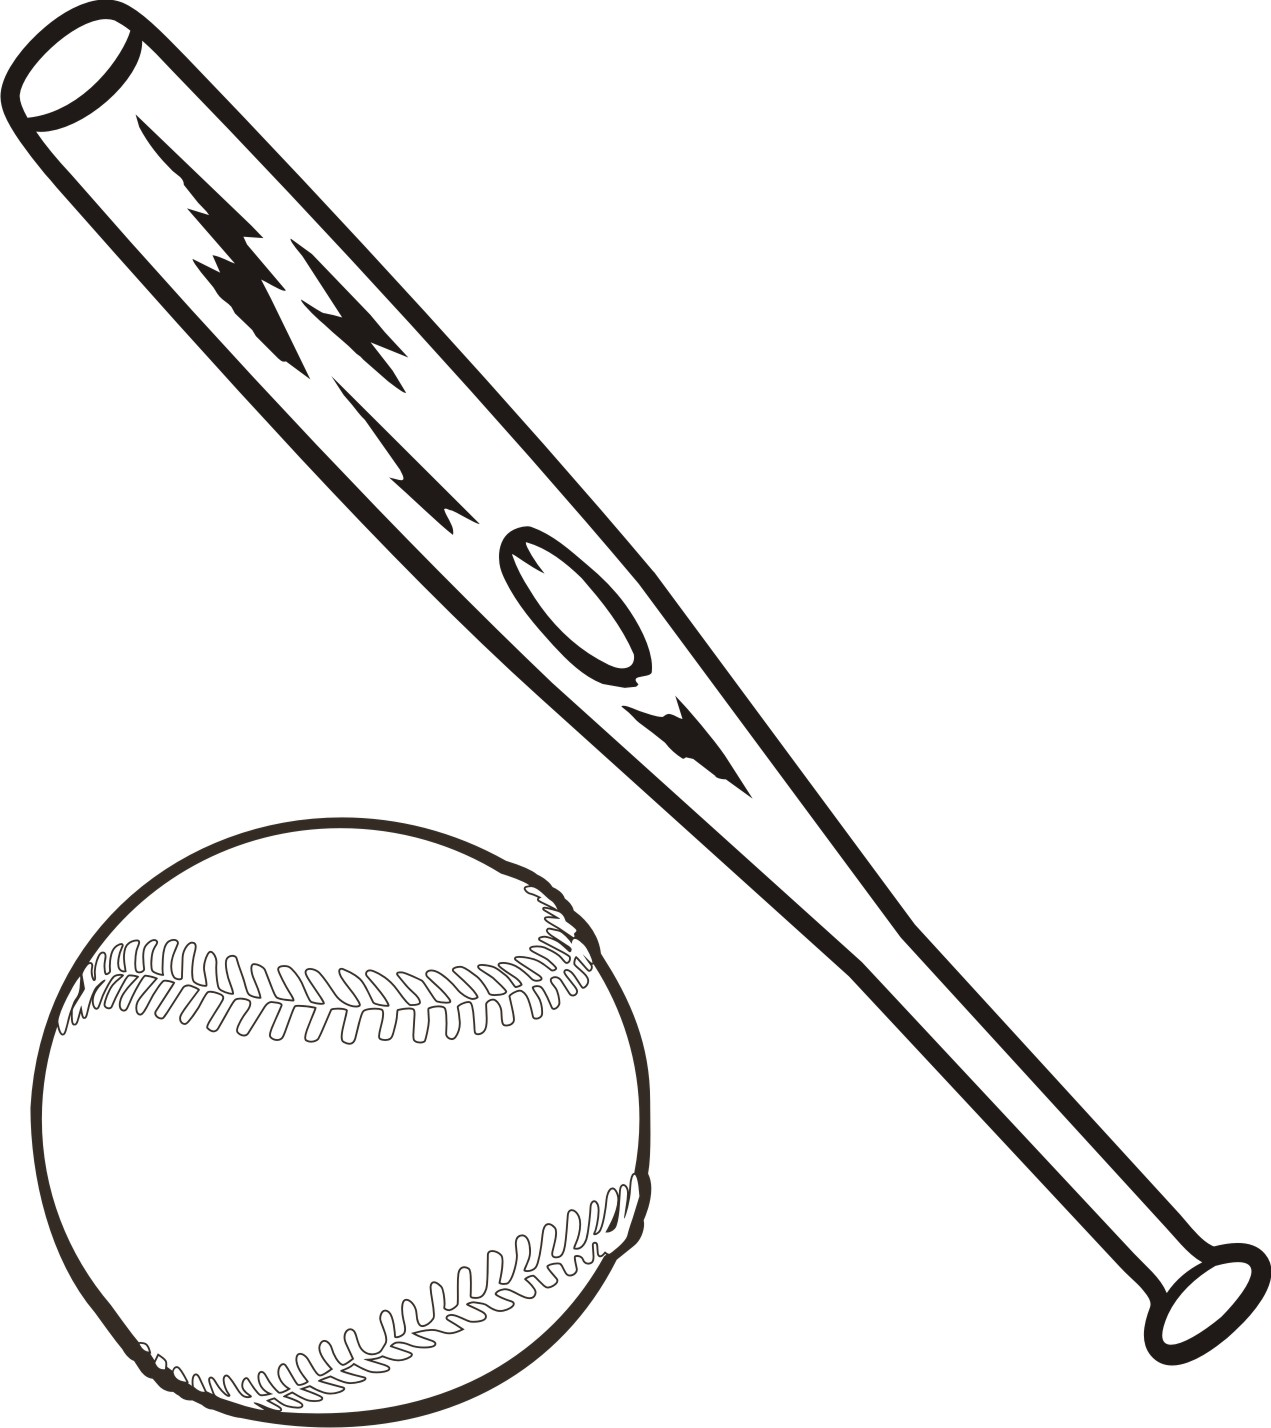 hight resolution of 1271x1428 baseball black and white baseball clipart black and white free